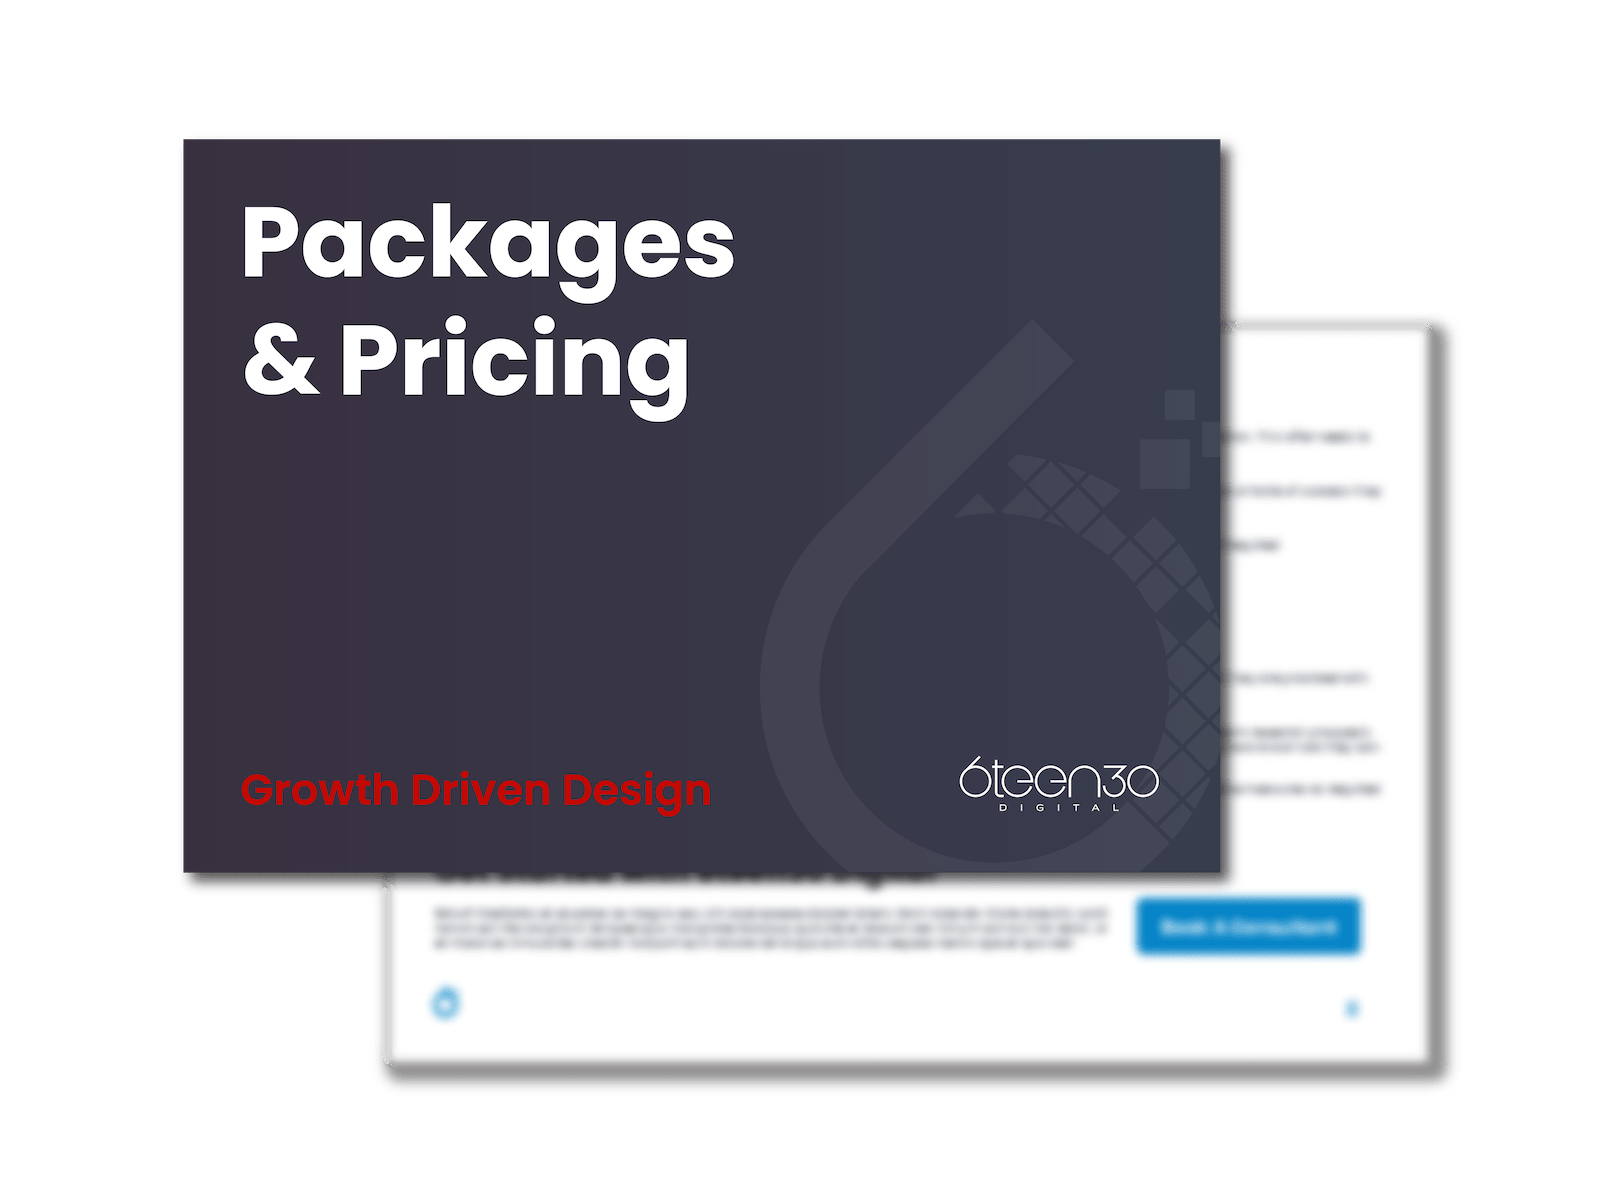 6teen30 - GDD - Pricing And Packages - Space